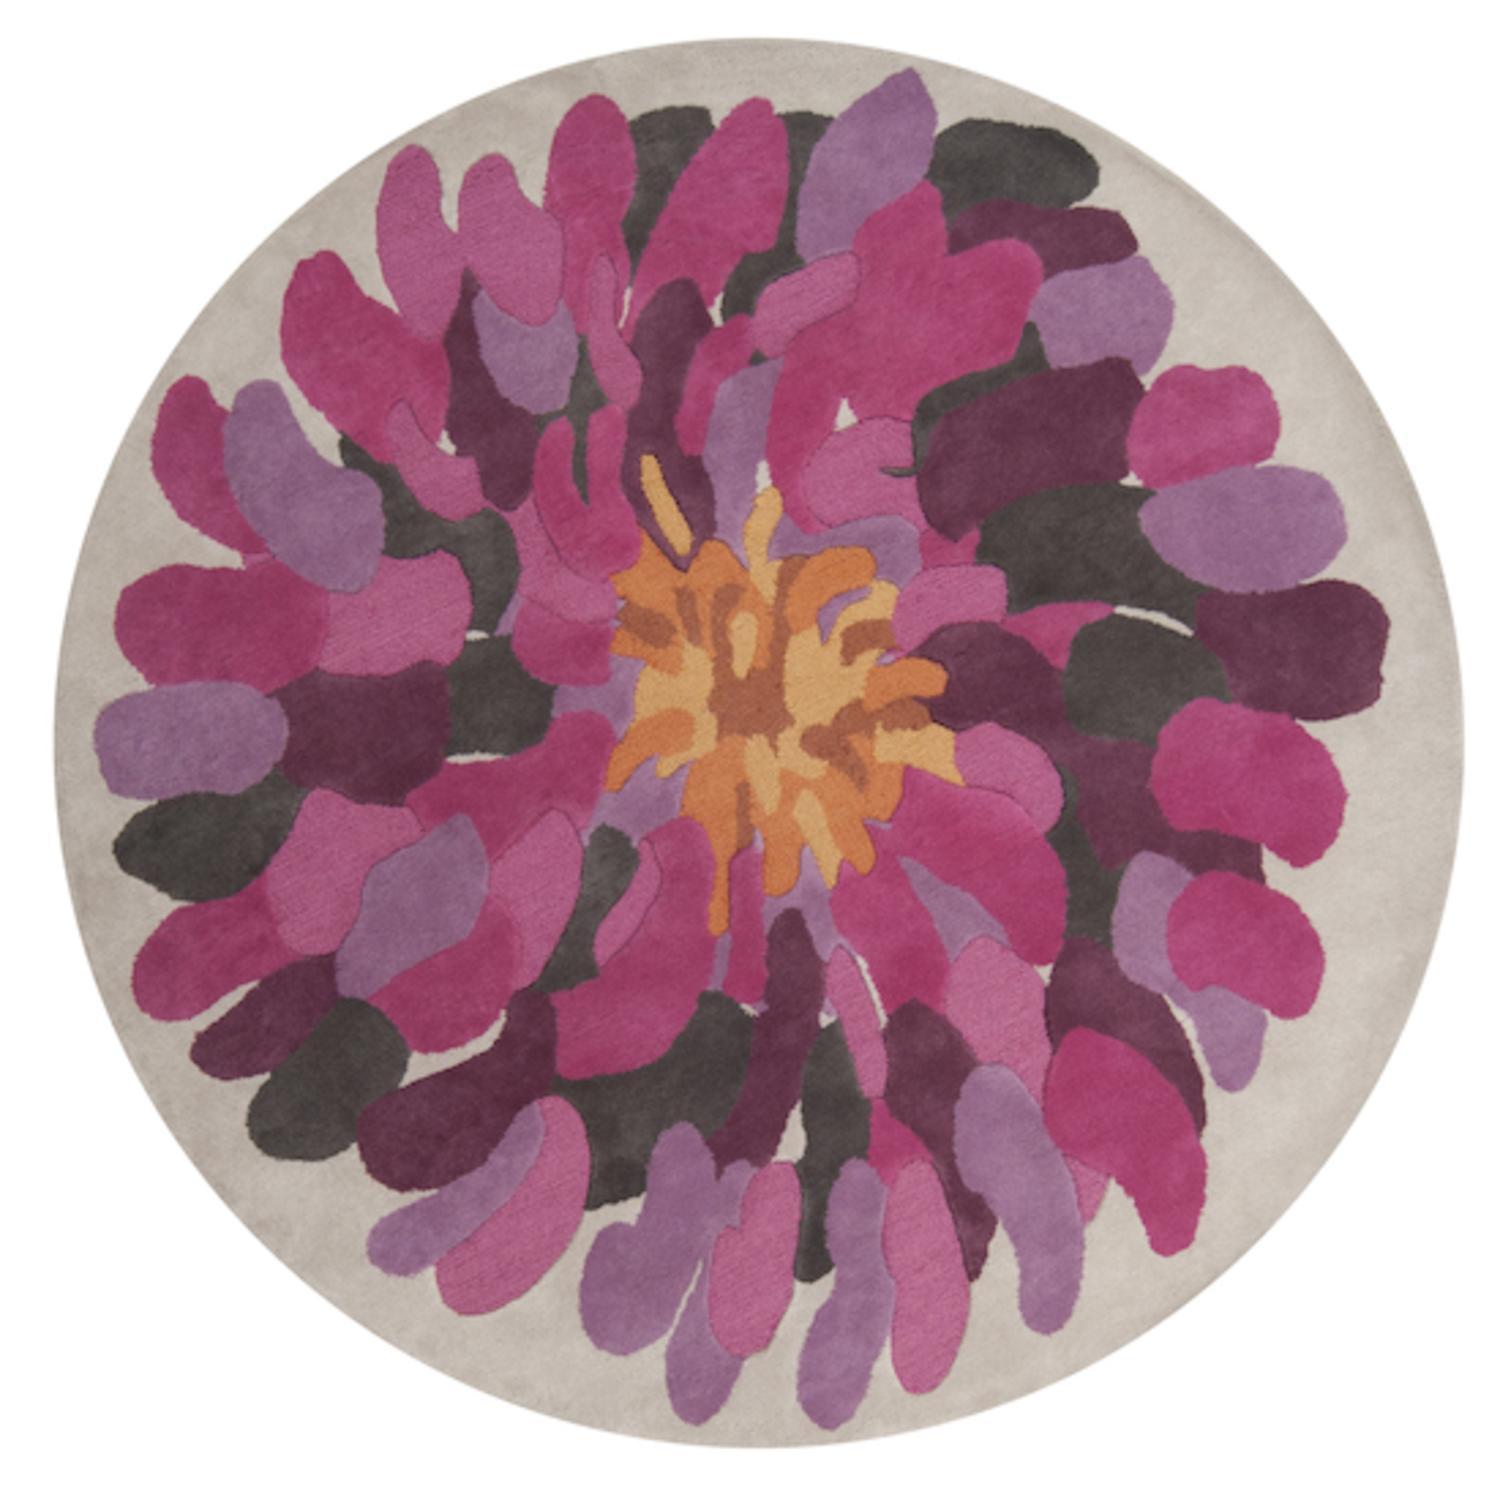 8' Magenta Bloom Raspberry, Golden Ochre, Purple & Bone Wool Round Area Rug